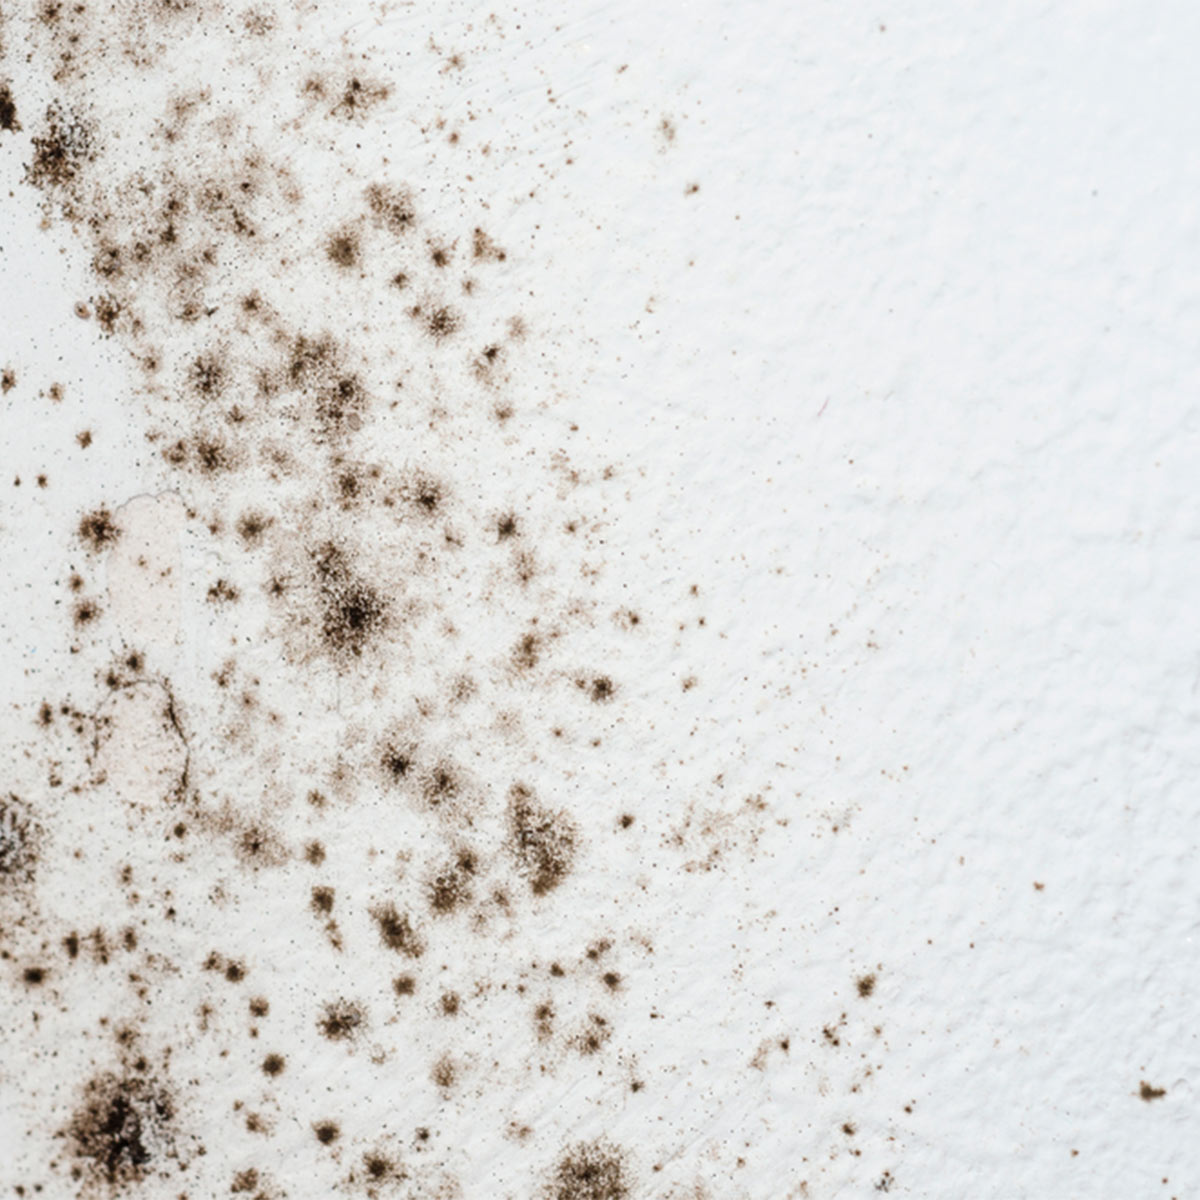 Mold Tips – Remove mold and mildew from   your walls